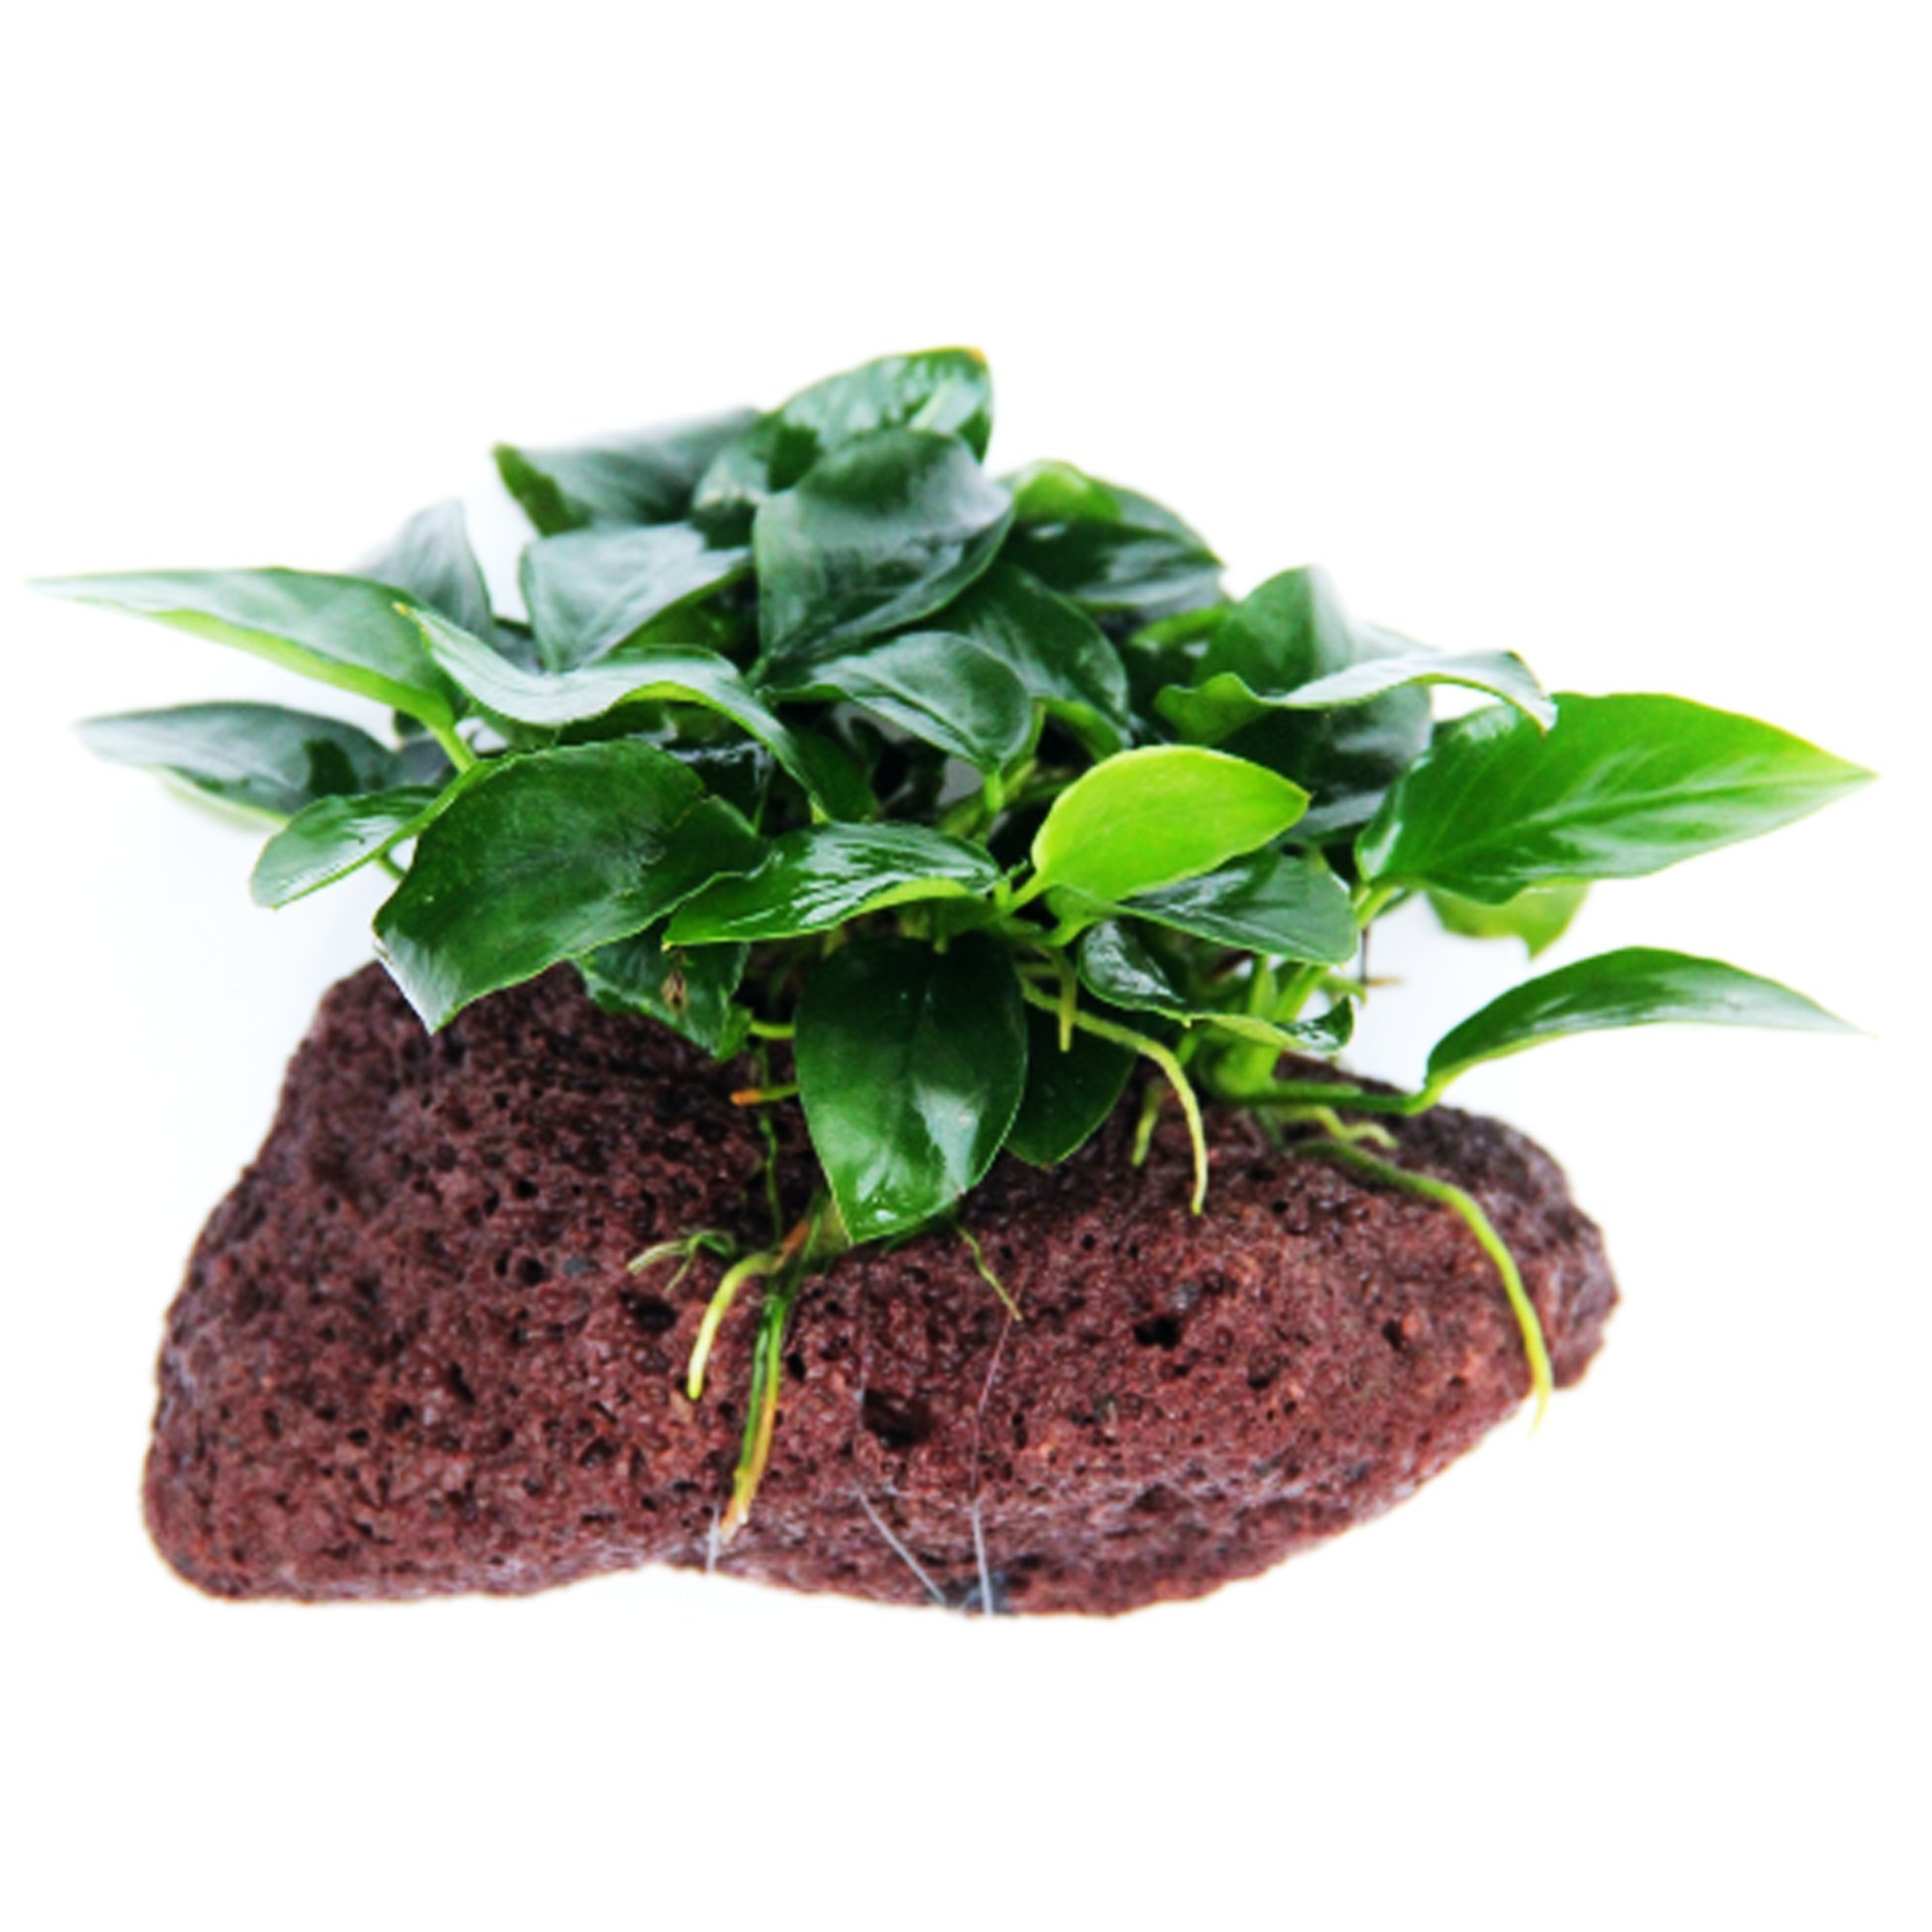 Greenpro (Anubias Nana Petite Lava Stone) Anubias, Java Fern, Moss and More! Freshwater Live Aquarium Plants on Driftwood for Aquatic Tropical Fish Tank Decorations - Easy to Drop by Greenpro